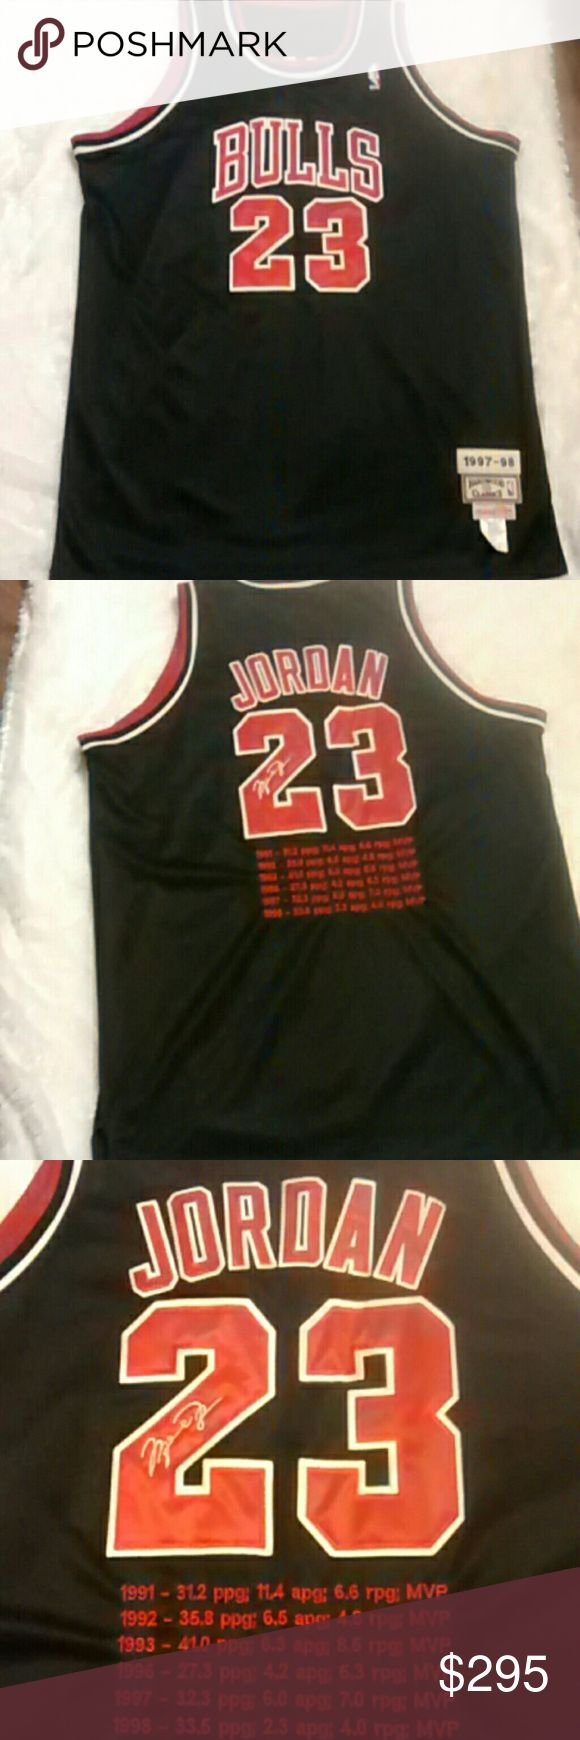 Rare NWT Michael Jordan #23 Basketball Jersey This is a NWT Michael Jordan #23 basketball shirt. Size 60 in good condition.  Road Jersey. I have never seen one of these anywhere or on internet  Any questions please feel free to ask. Bundle and save. Happy Poshing! Hardwood Classic Shirts